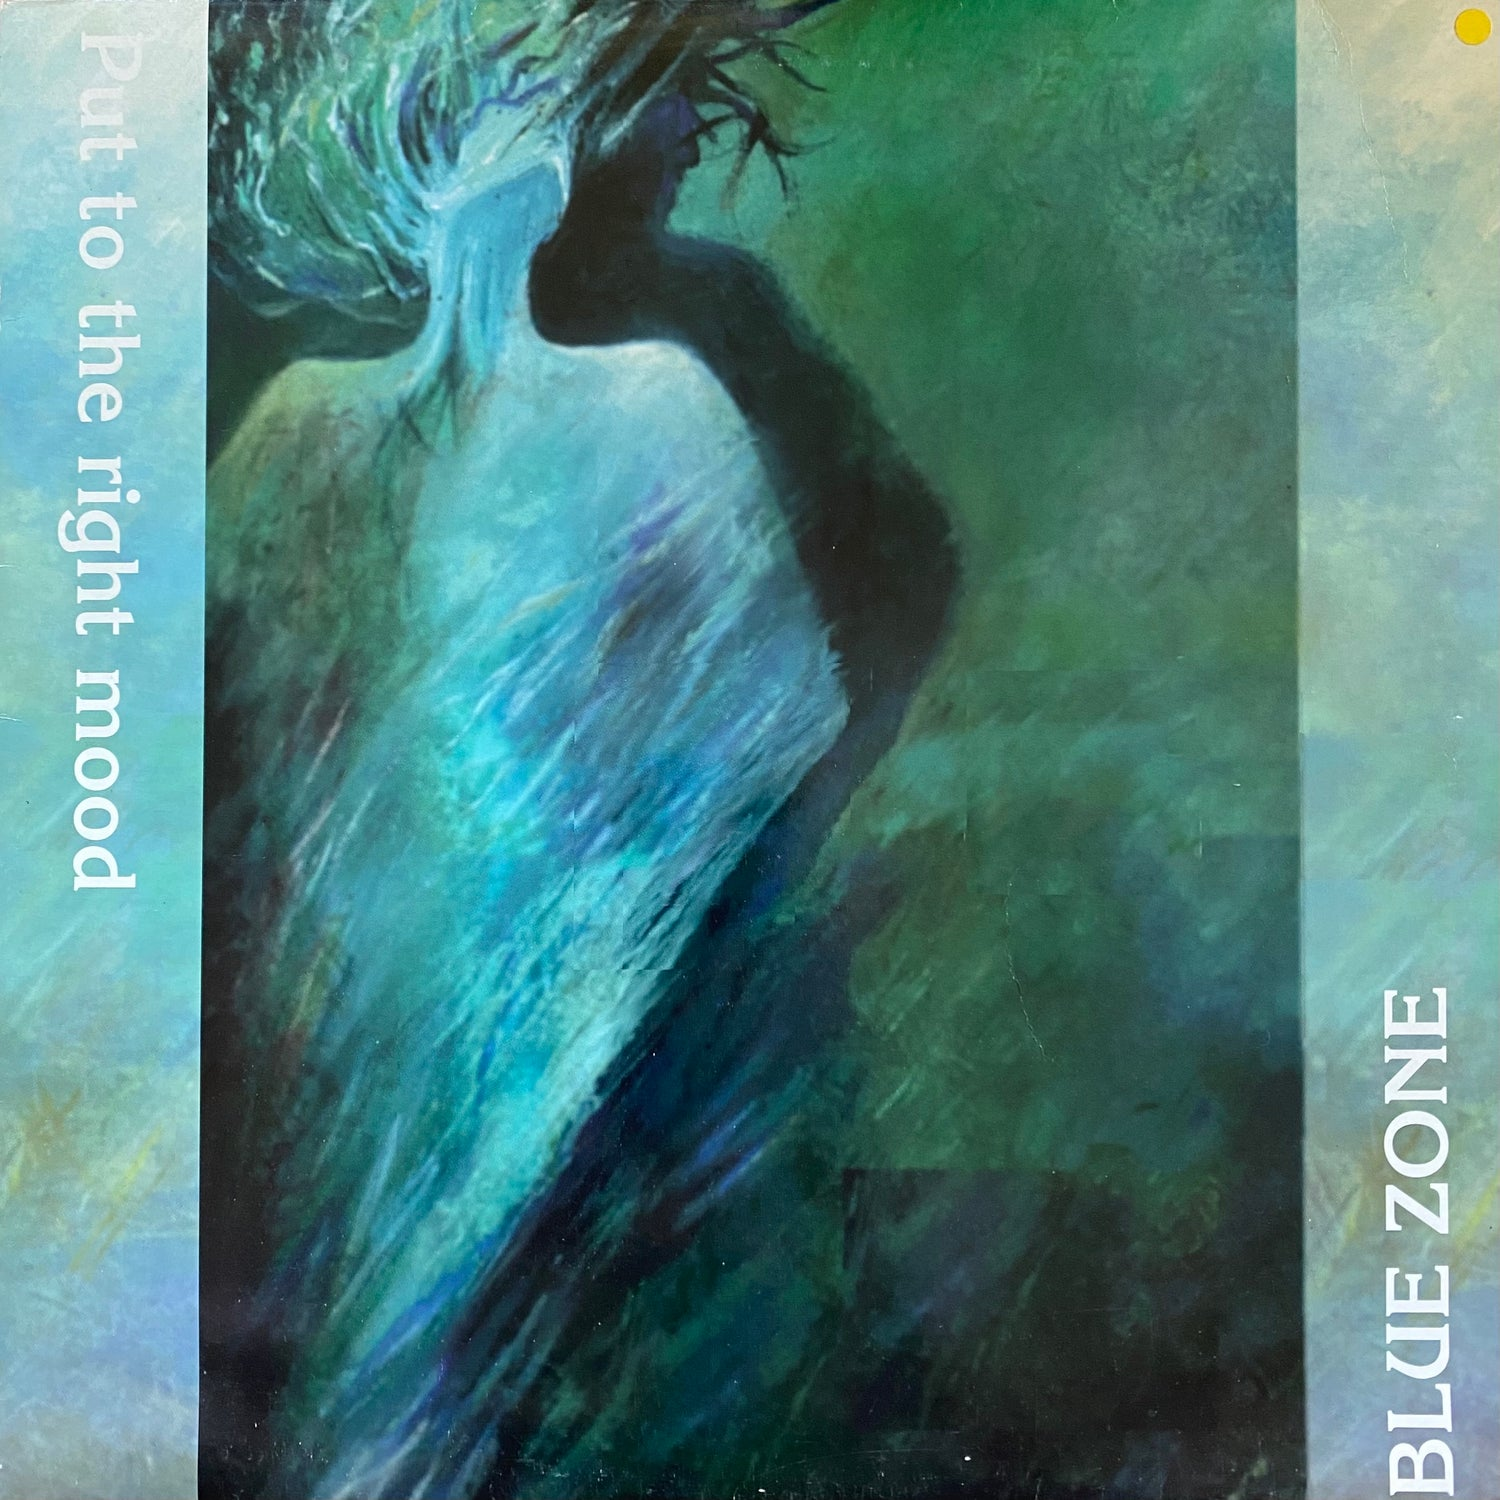 Blue Zone - Put To The Right Mood